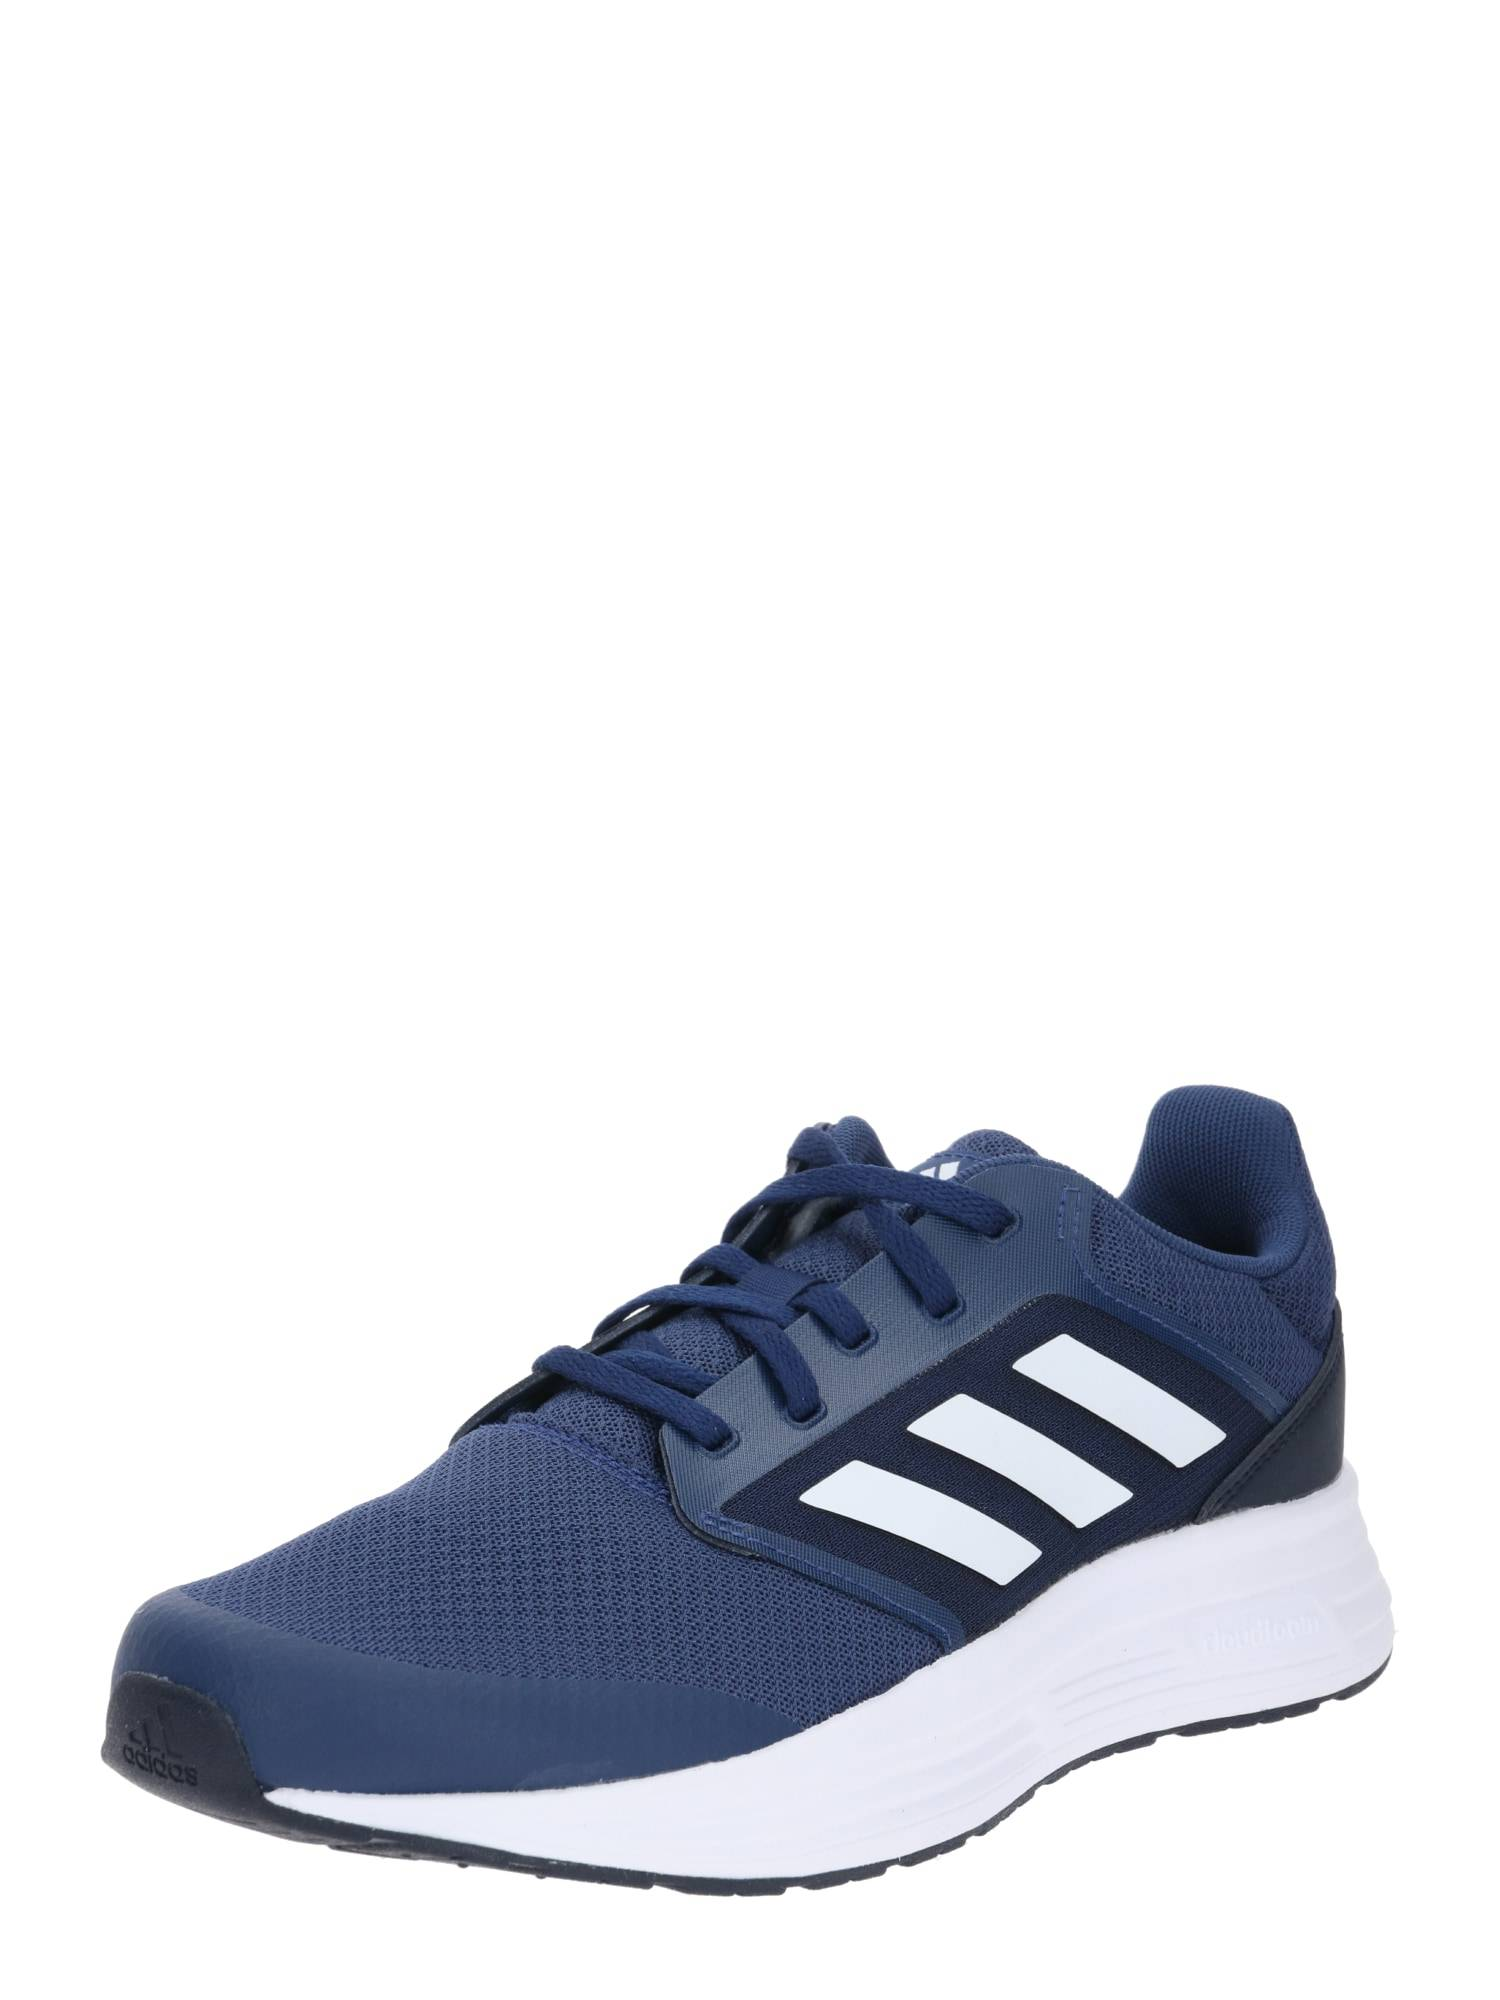 ADIDAS PERFORMANCE Chaussure de course 'Galaxy 5'  - Bleu - Taille: 46 - male